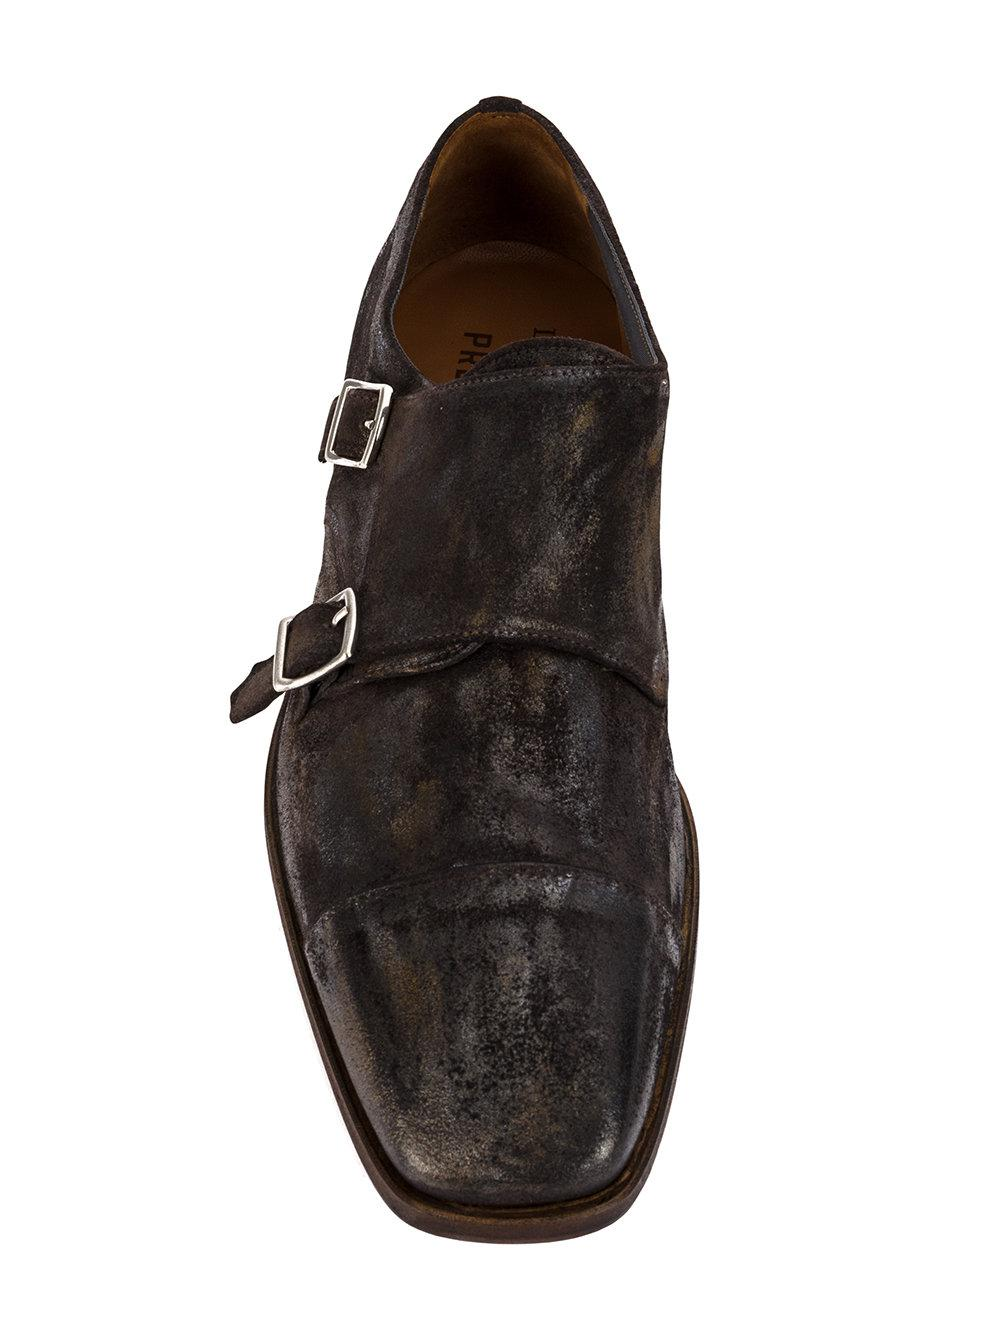 Premiata Leather Monk Shoes in Brown for Men